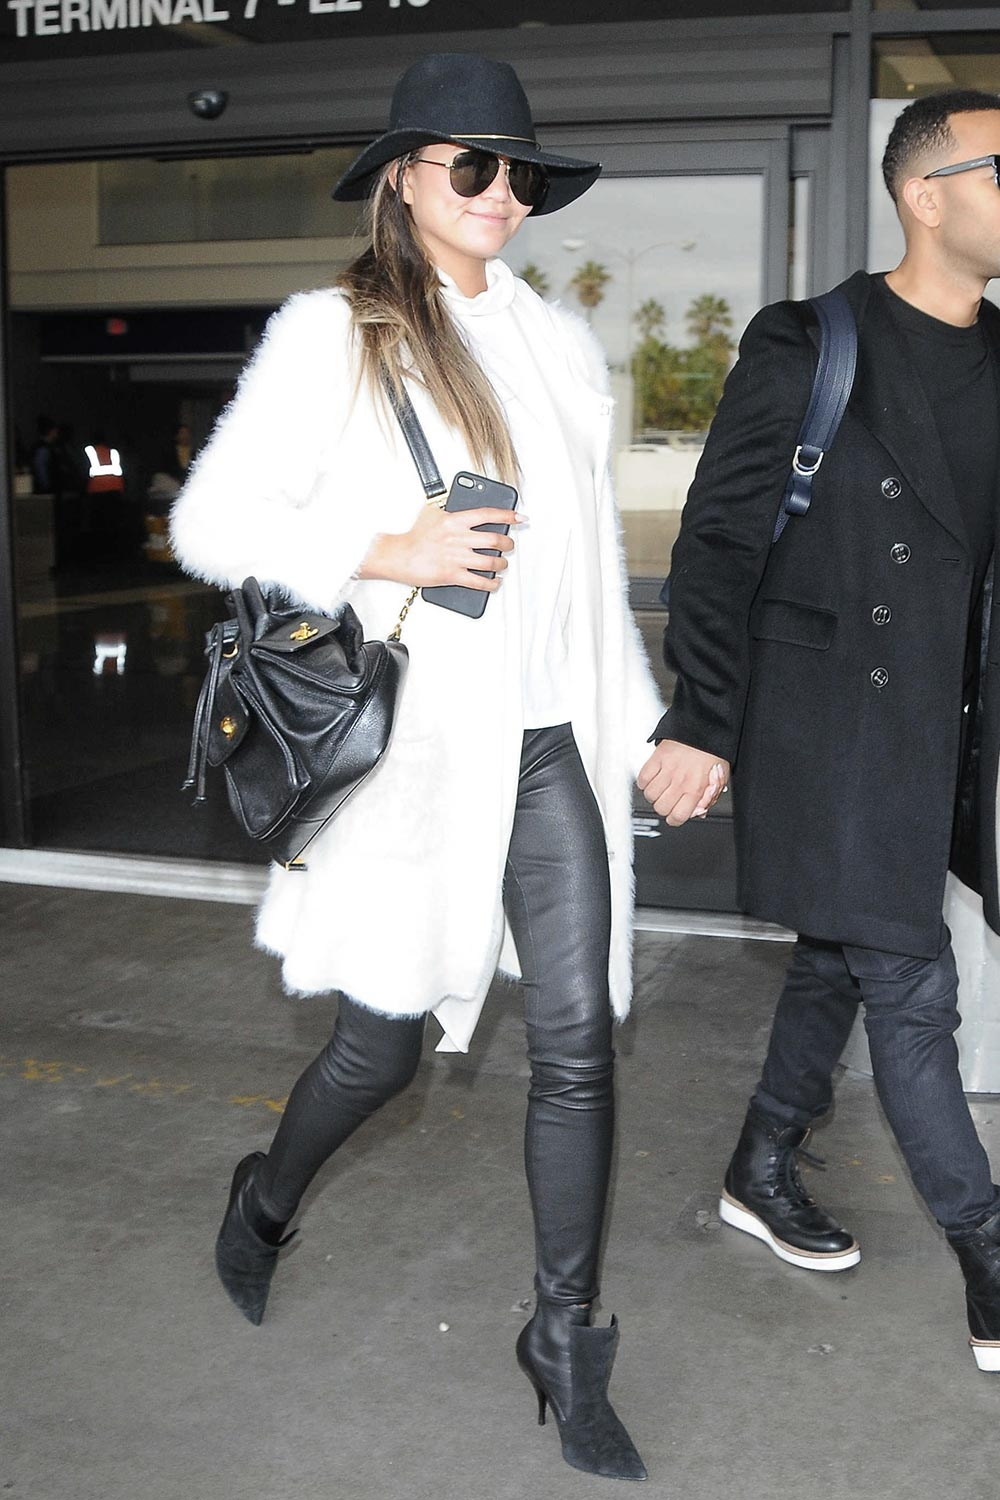 Chrissy Teigen arriving at LAX